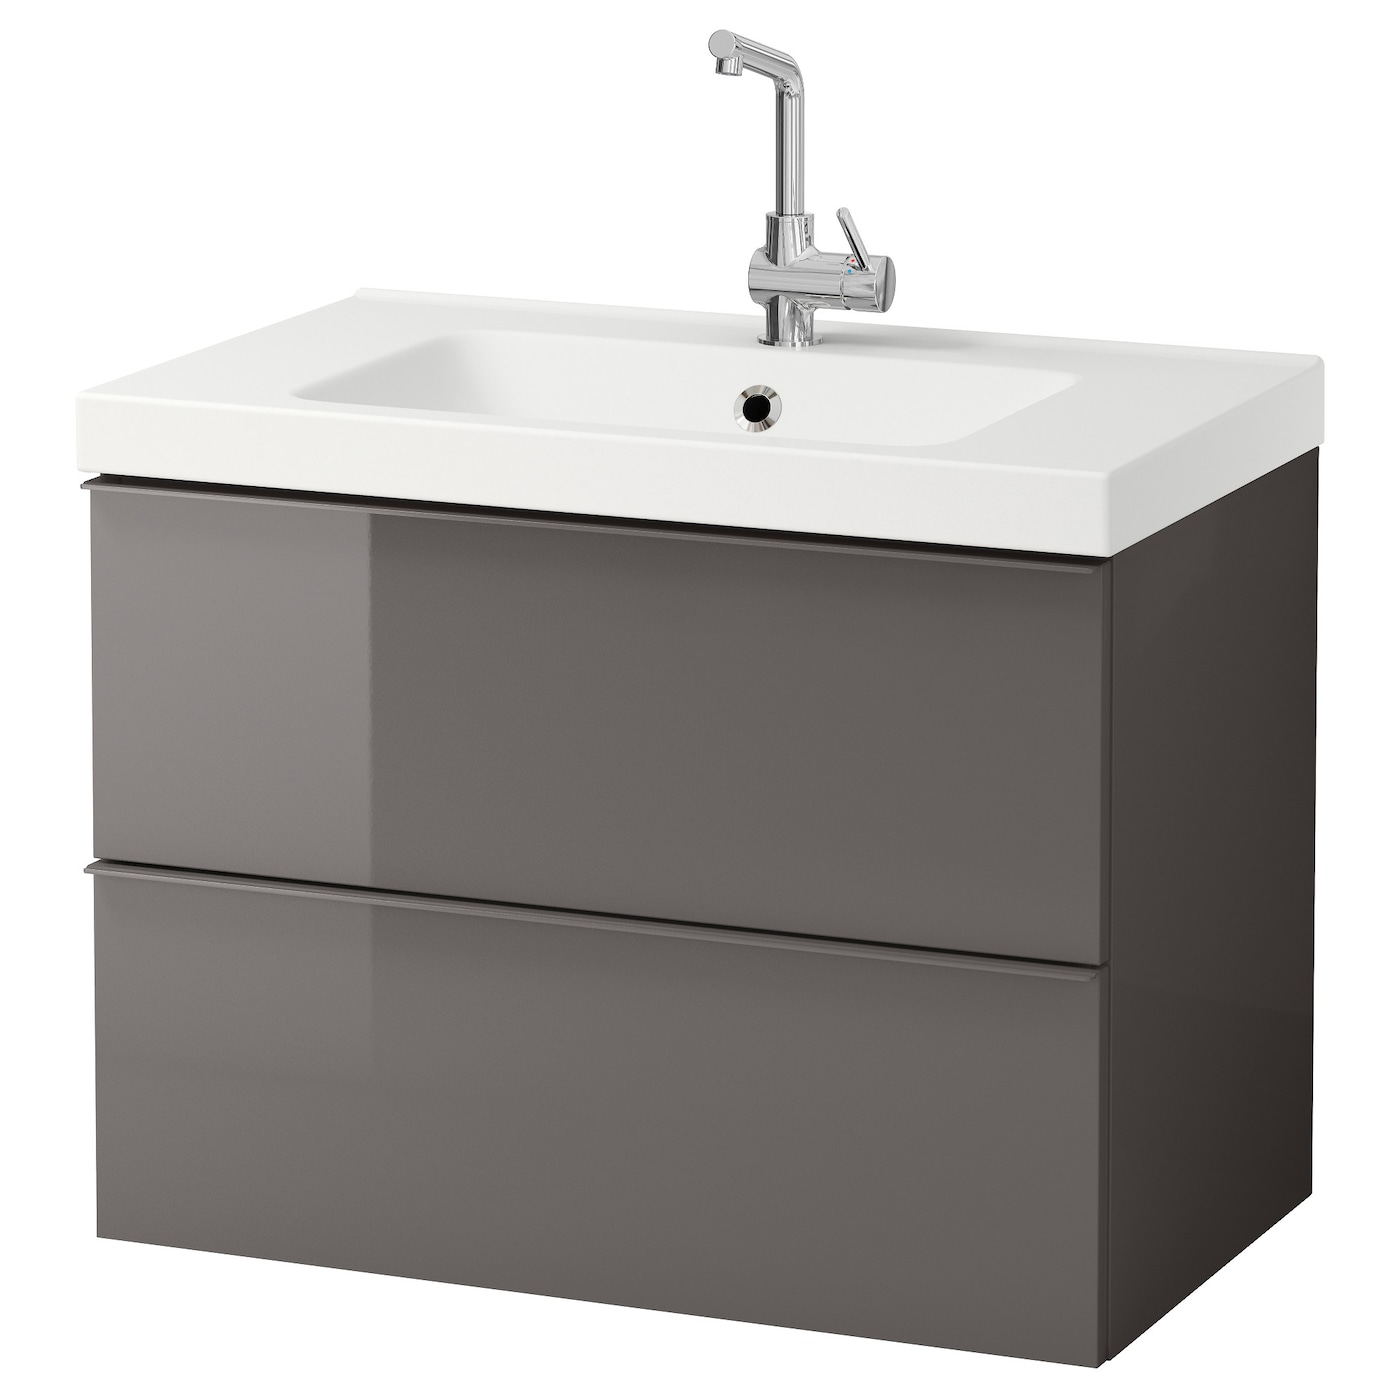 bathroom sink cabinets with drawers odensvik godmorgon wash stand with 2 drawers high gloss 22312